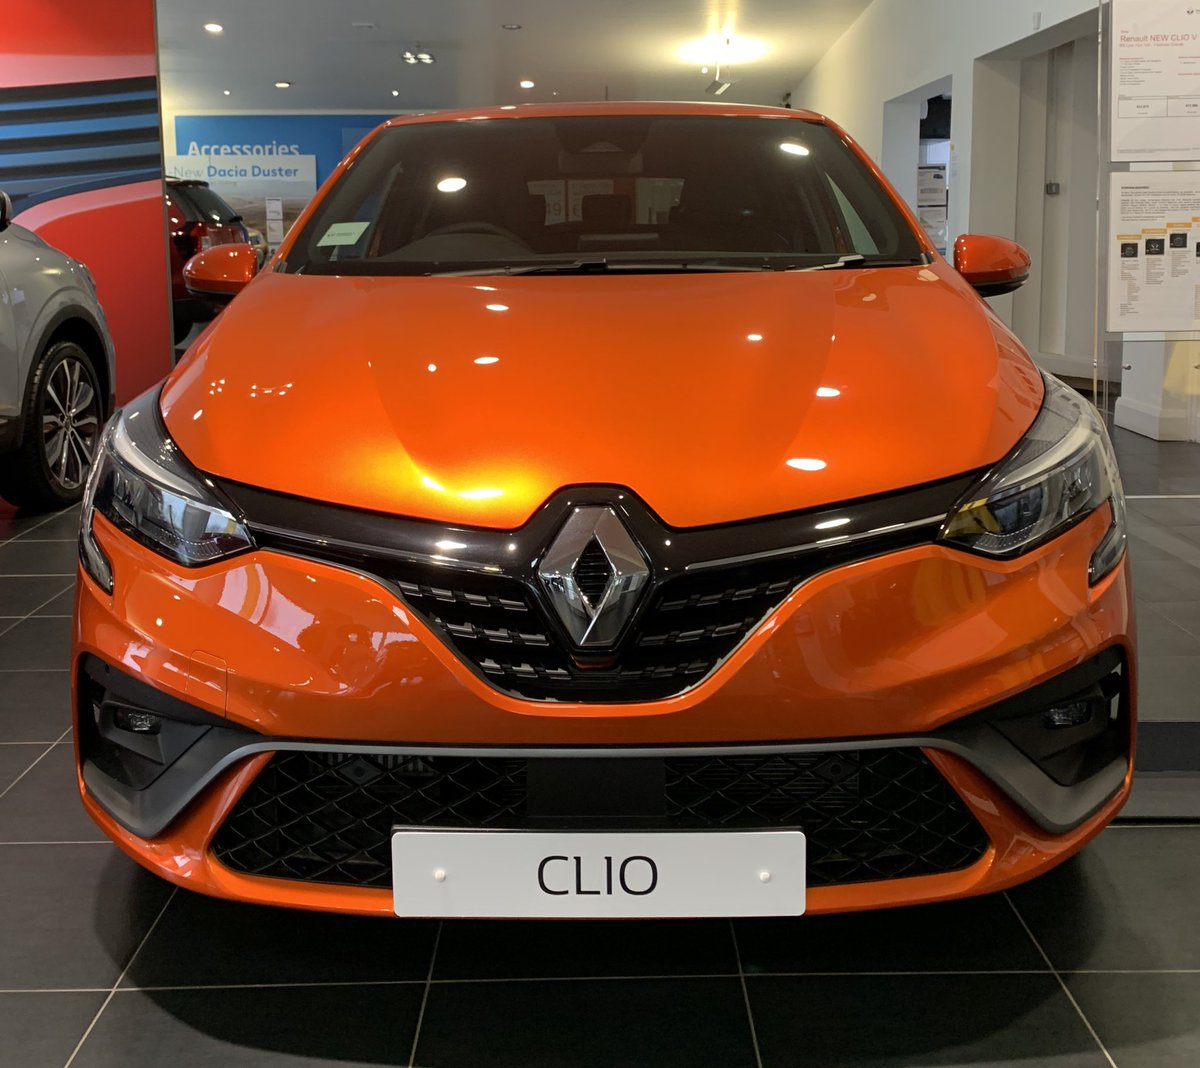 🍊🍊🍊  #allnew #renault #clio  #EnhanceYourCustomersExperience 💪 https://t.co/mgVaw2B971